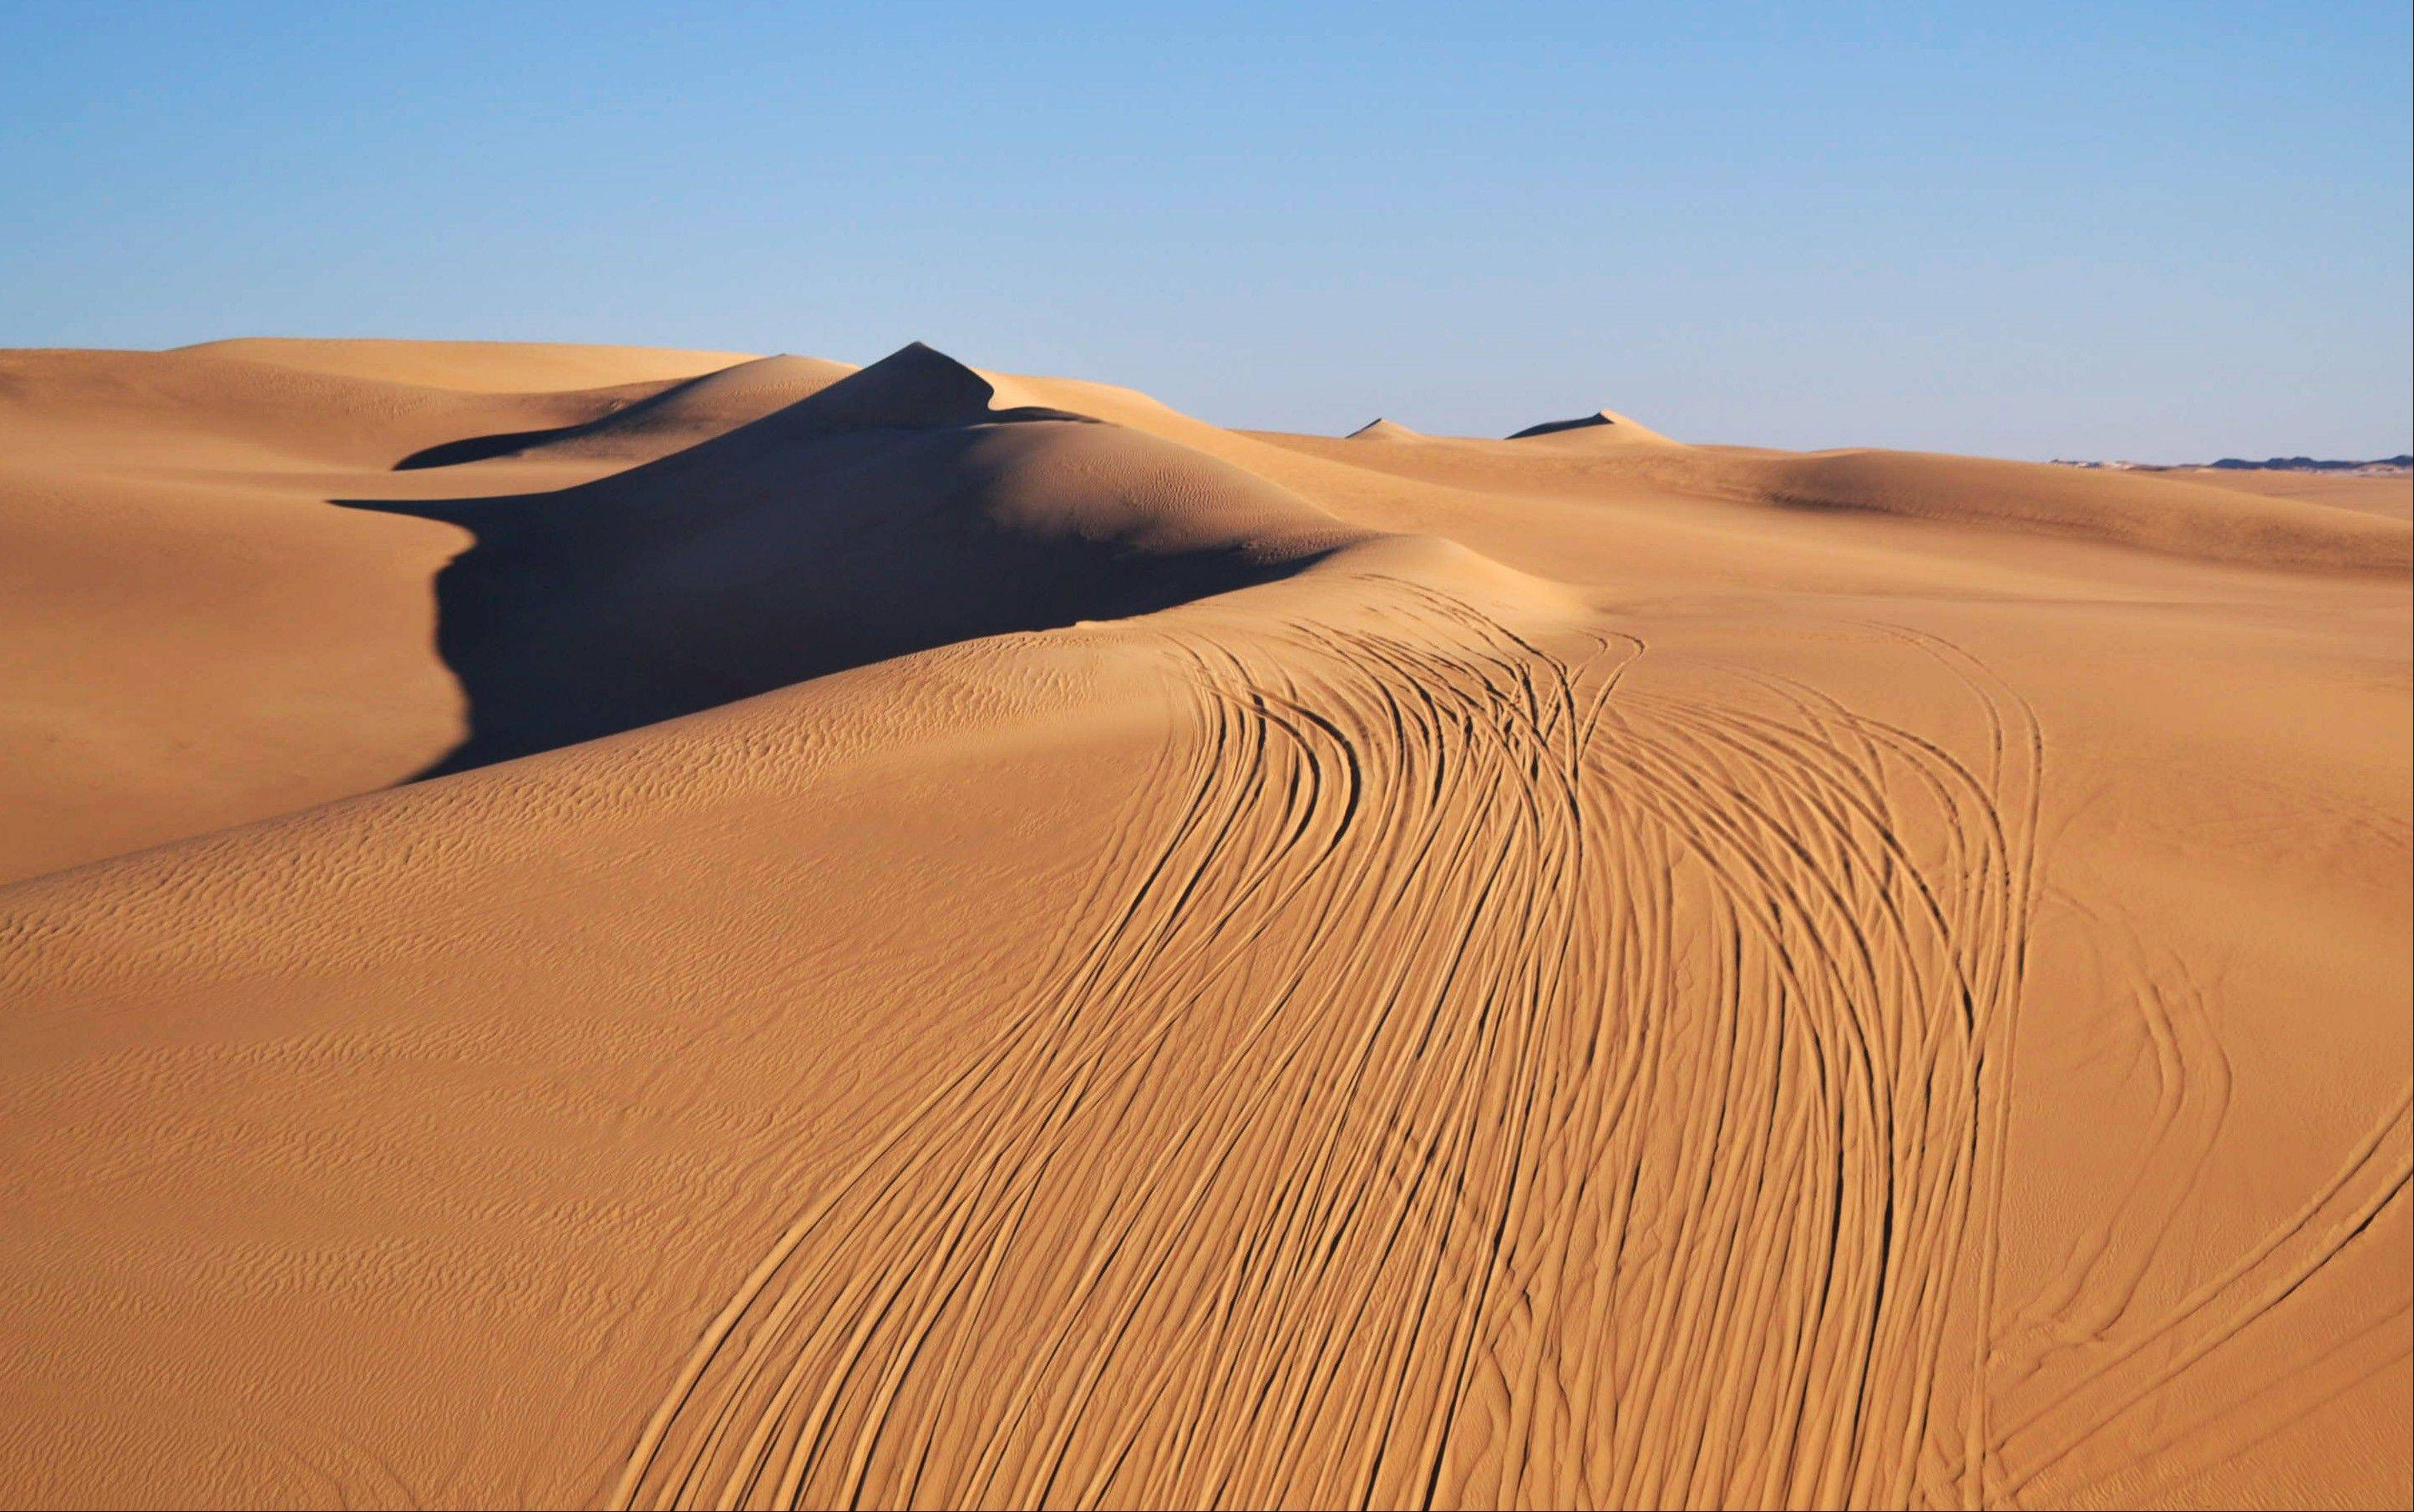 Tracks from four-wheel drives line the Great Sand Sea, a vast desert with huge rolling sand dunes that span the Egyptian and Libyan frontiers.